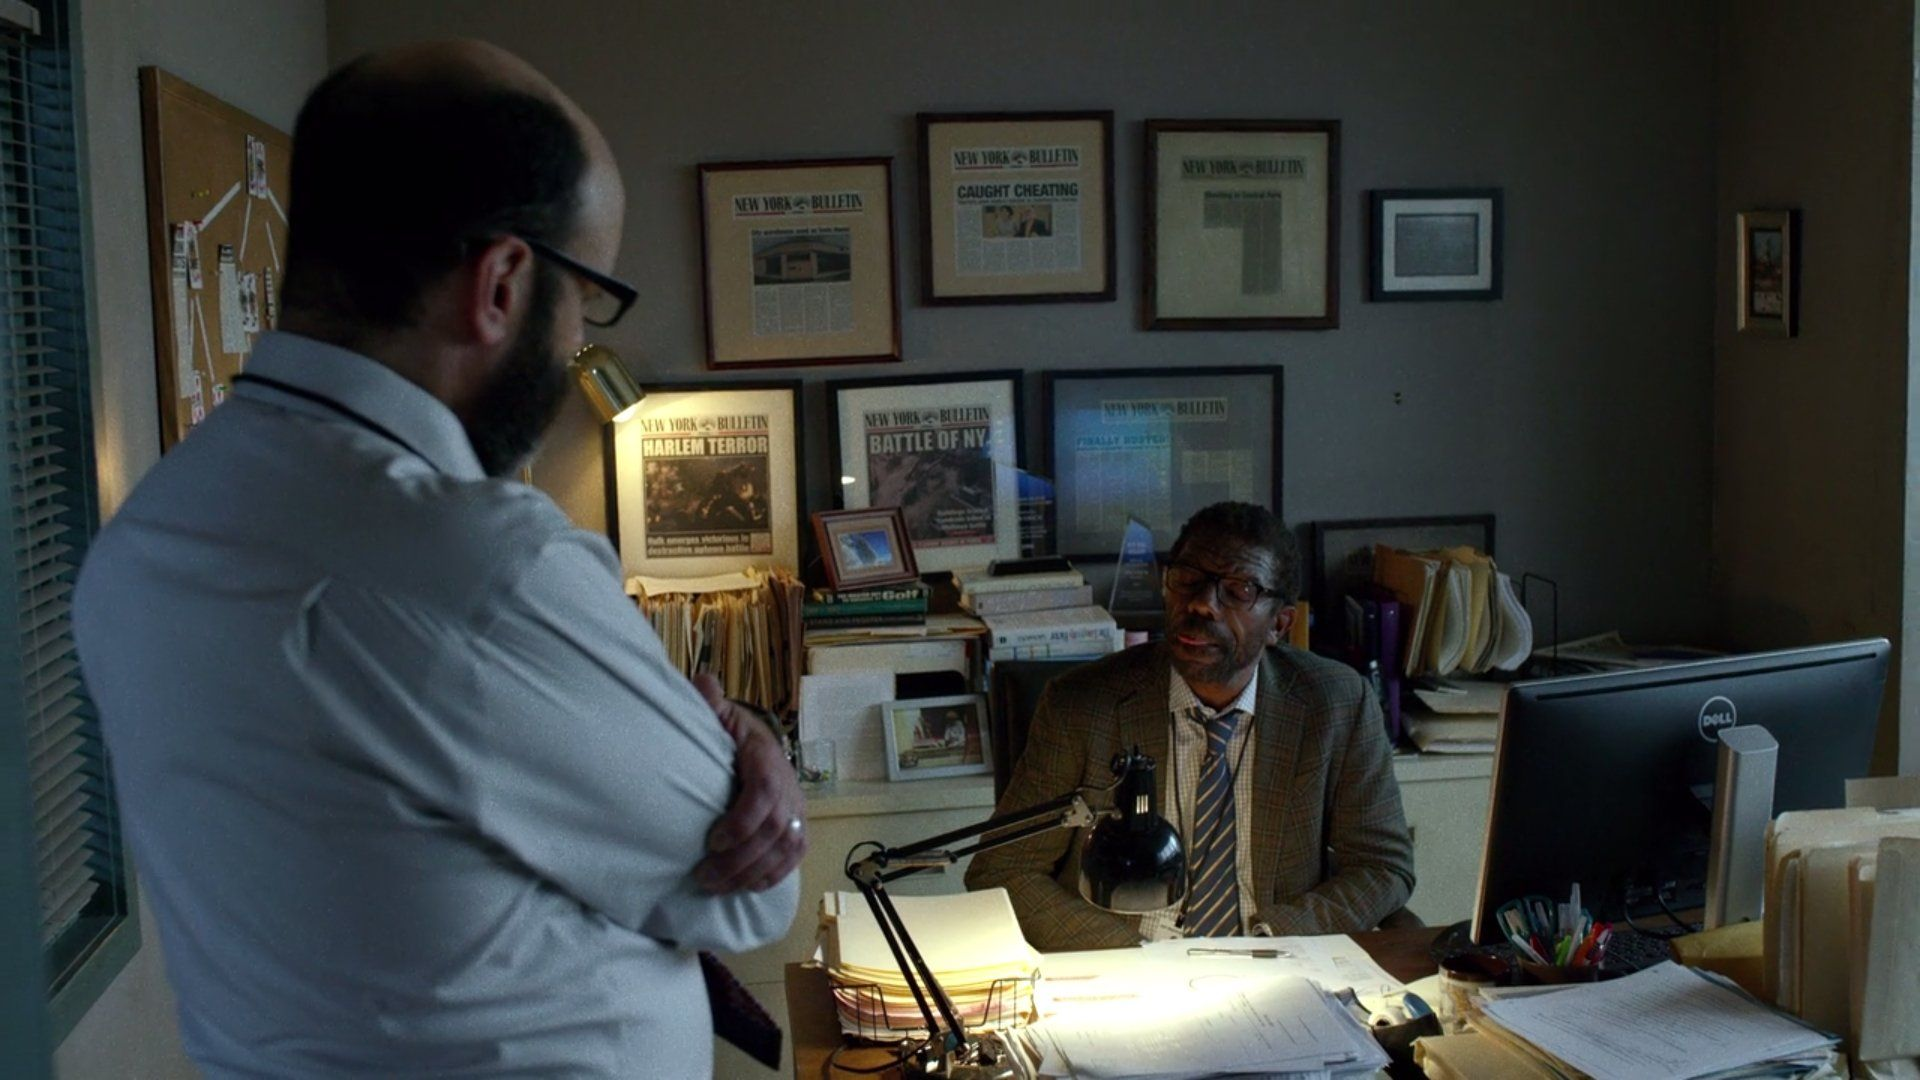 Ben urich une new york bulletin desk Terror in harlem easter egg battle of ny daredevil series 110 pix geeks